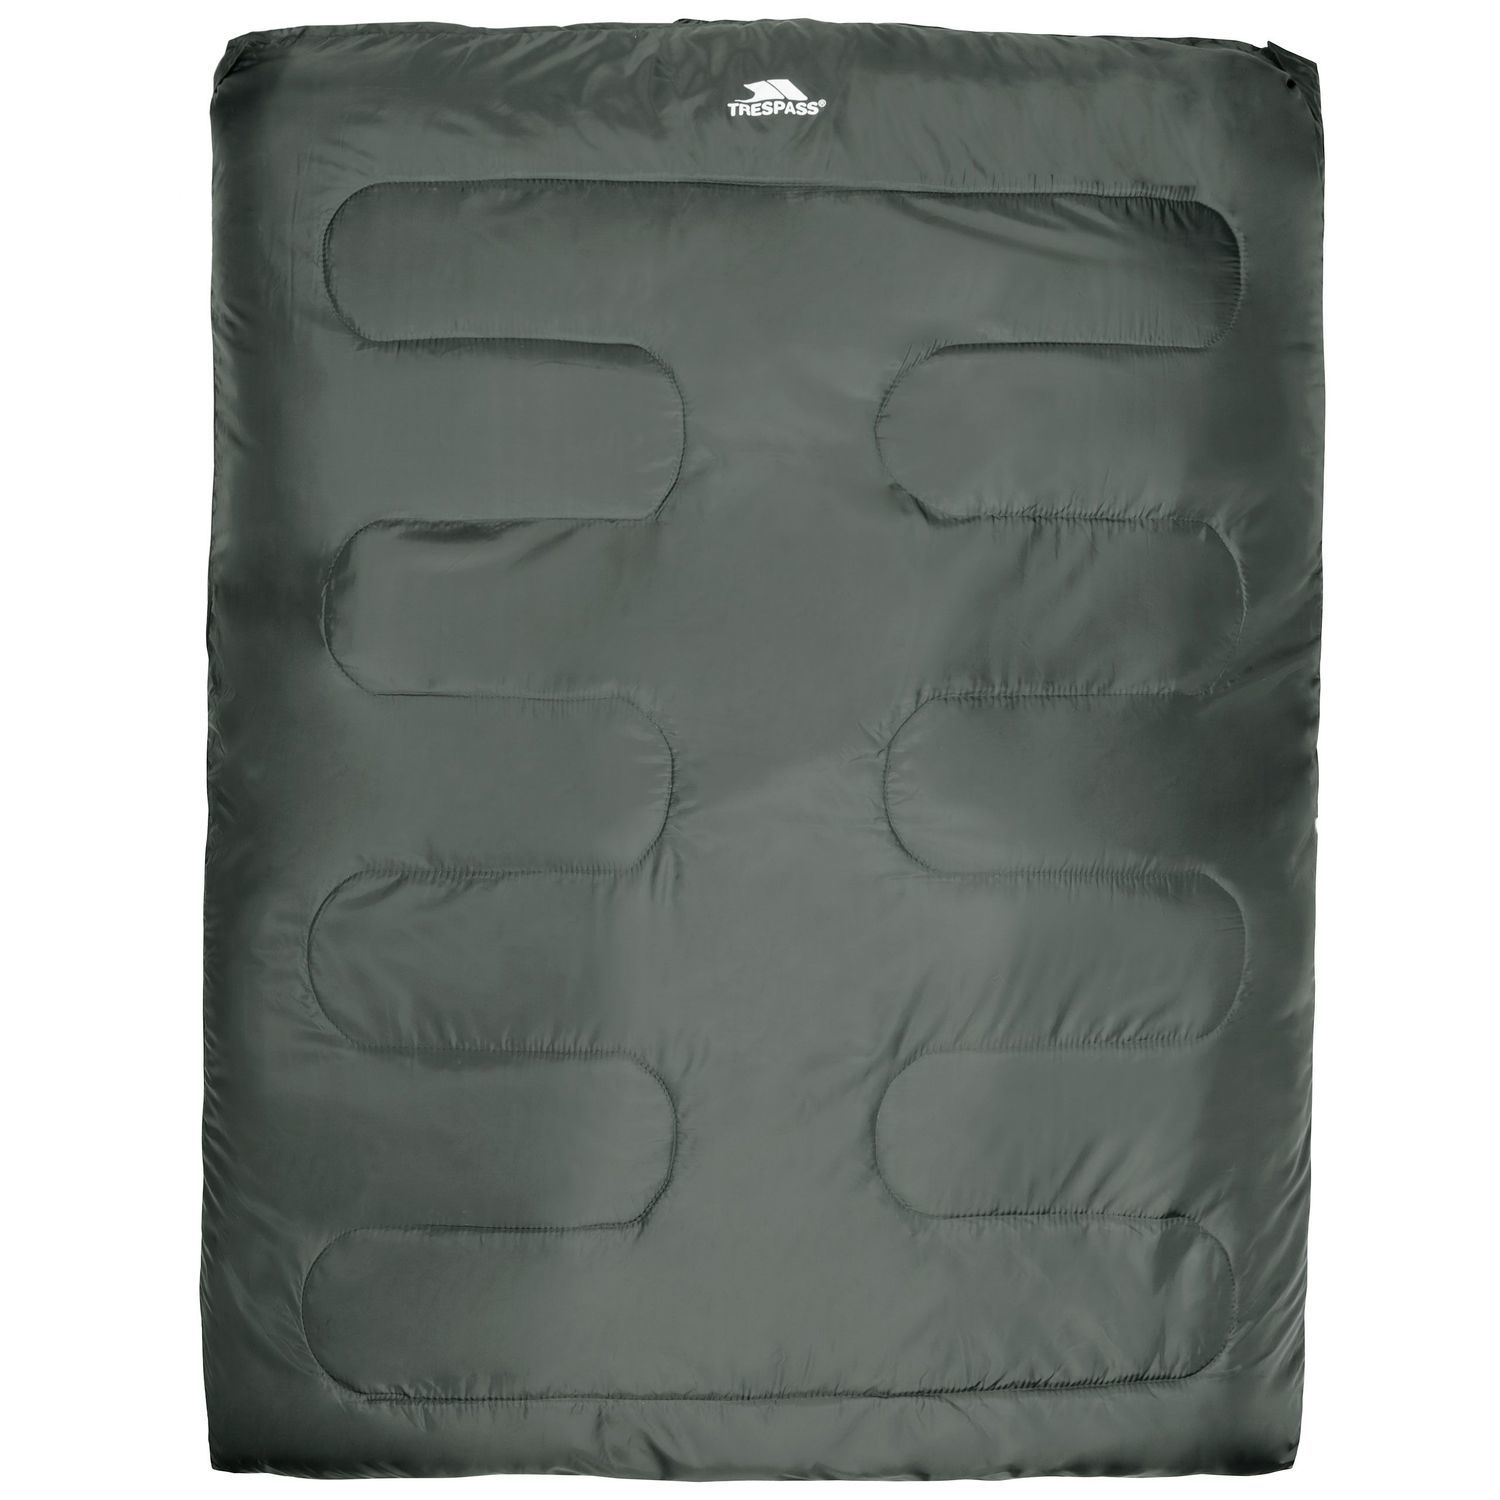 Trespass Catnap 3 Season Double Sleeping Bag - Moss